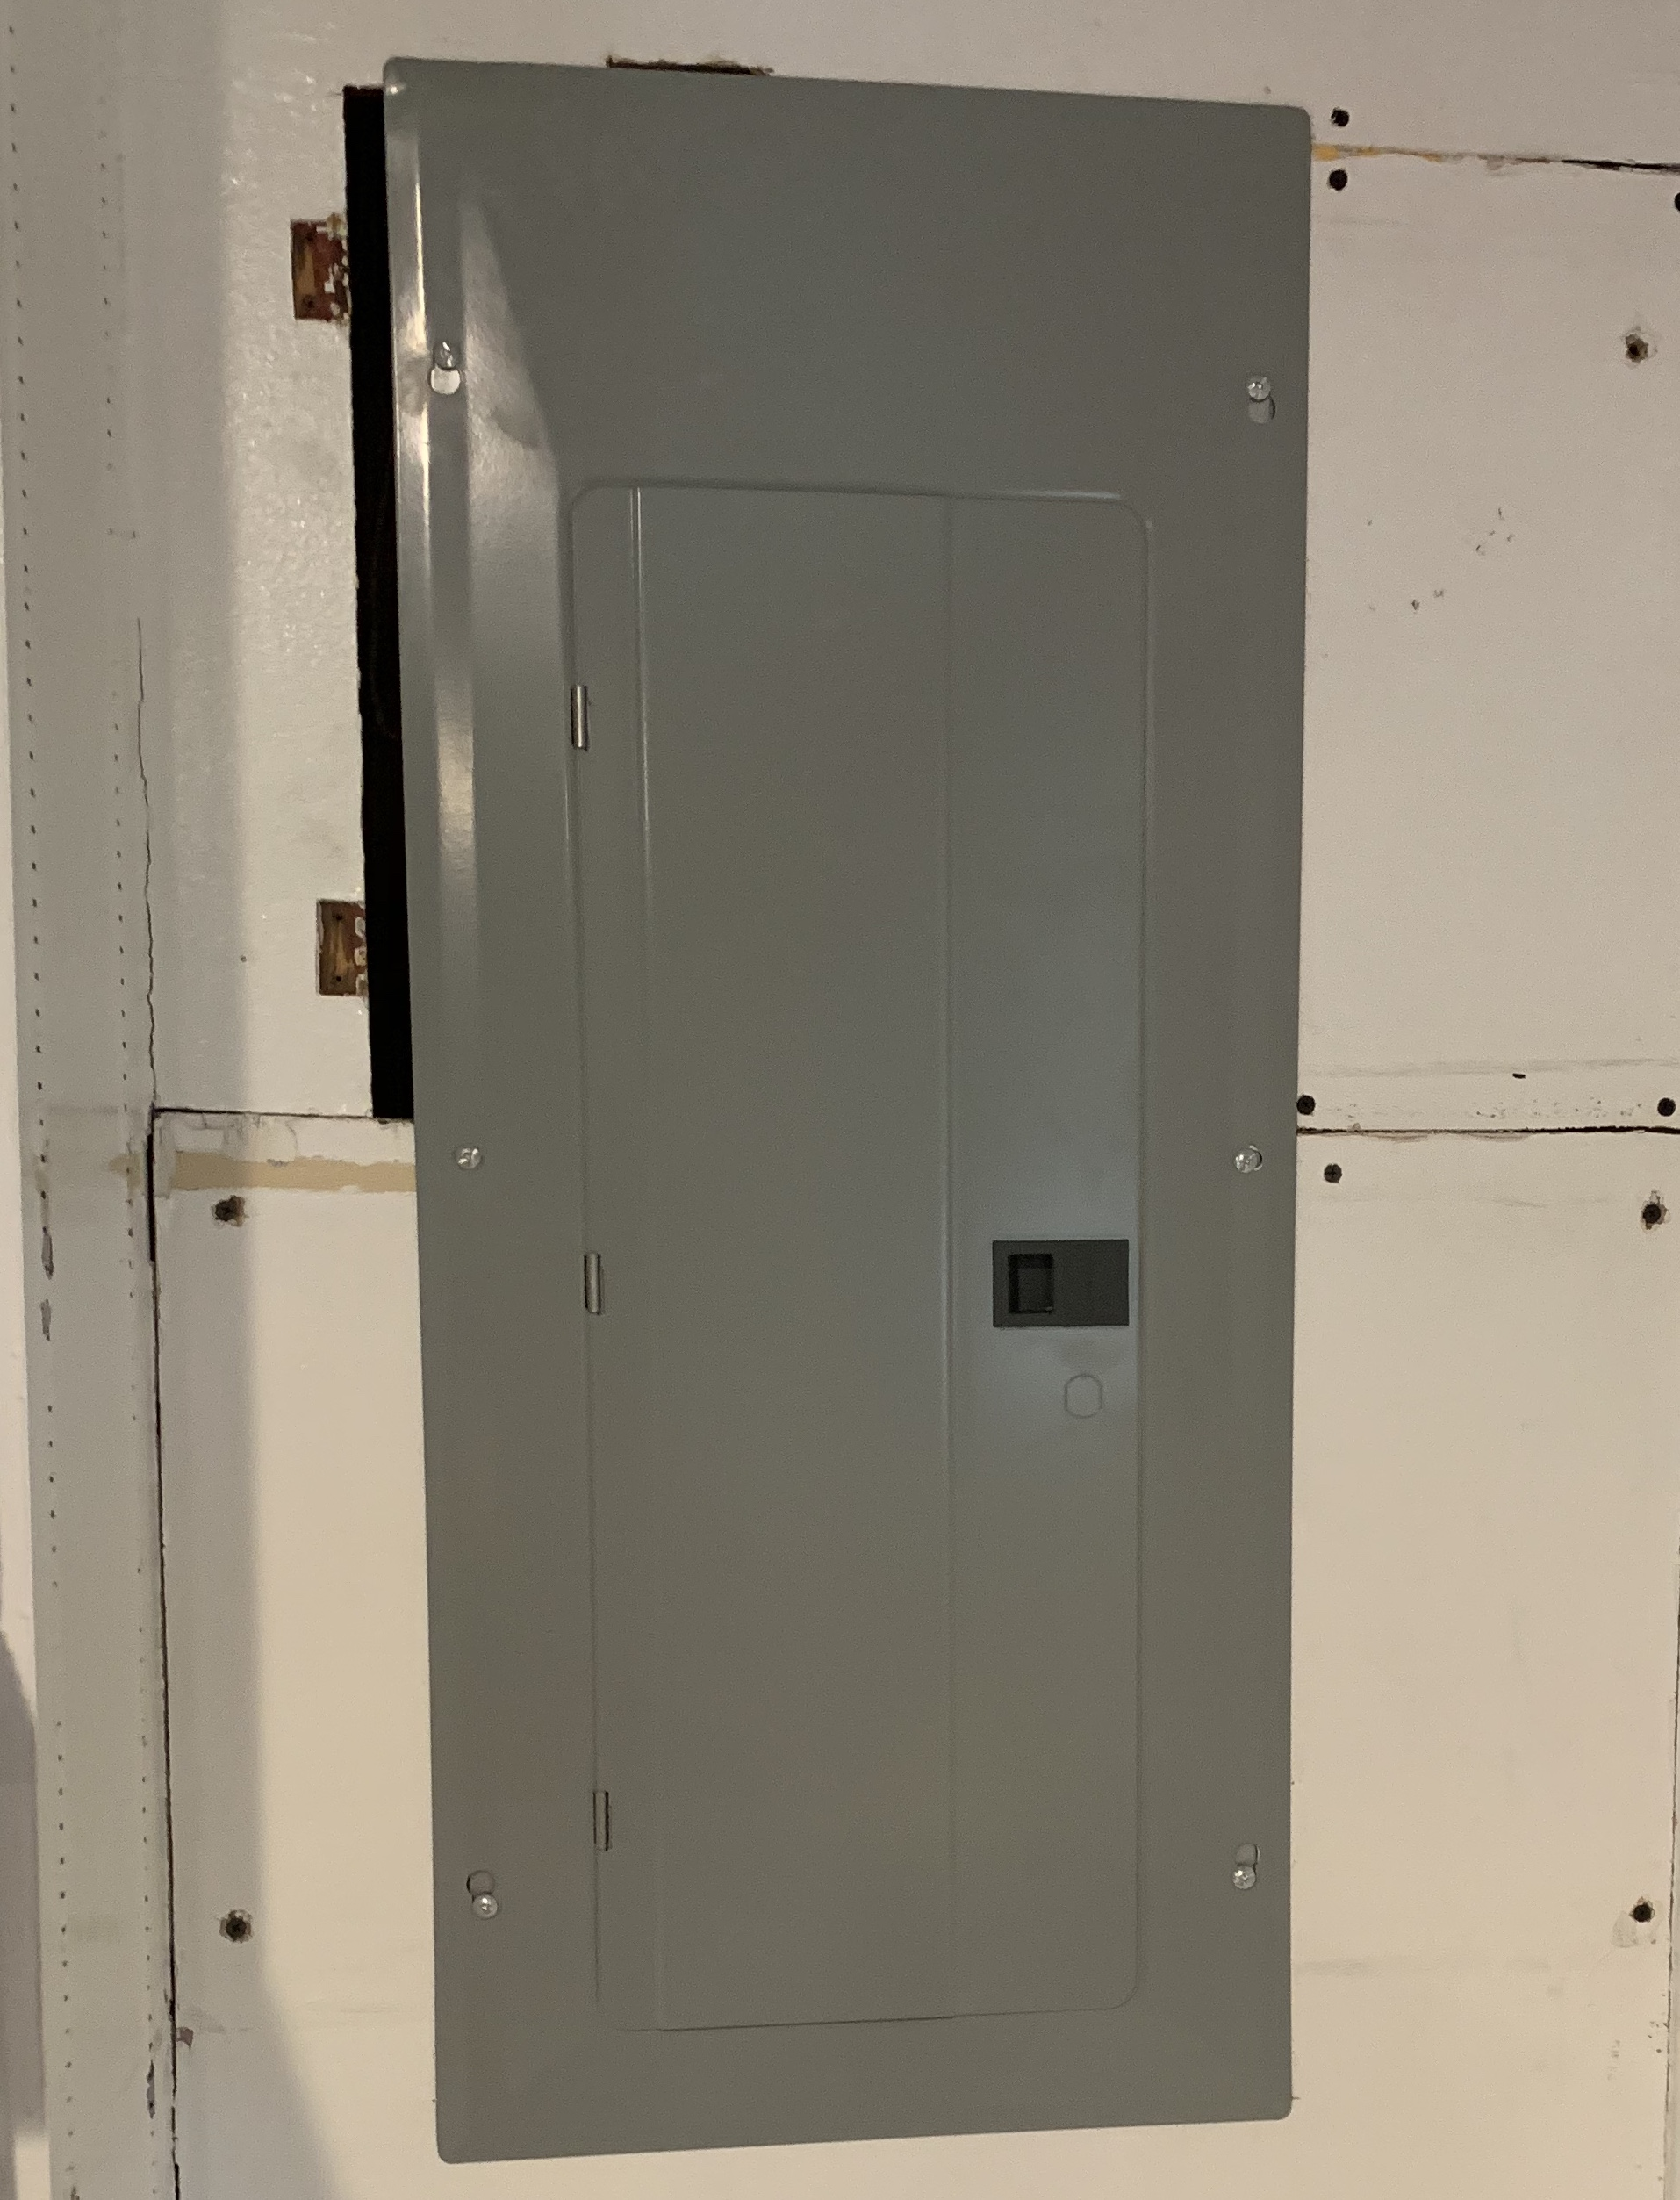 New electrical panel- and it's more than twice as big as the original